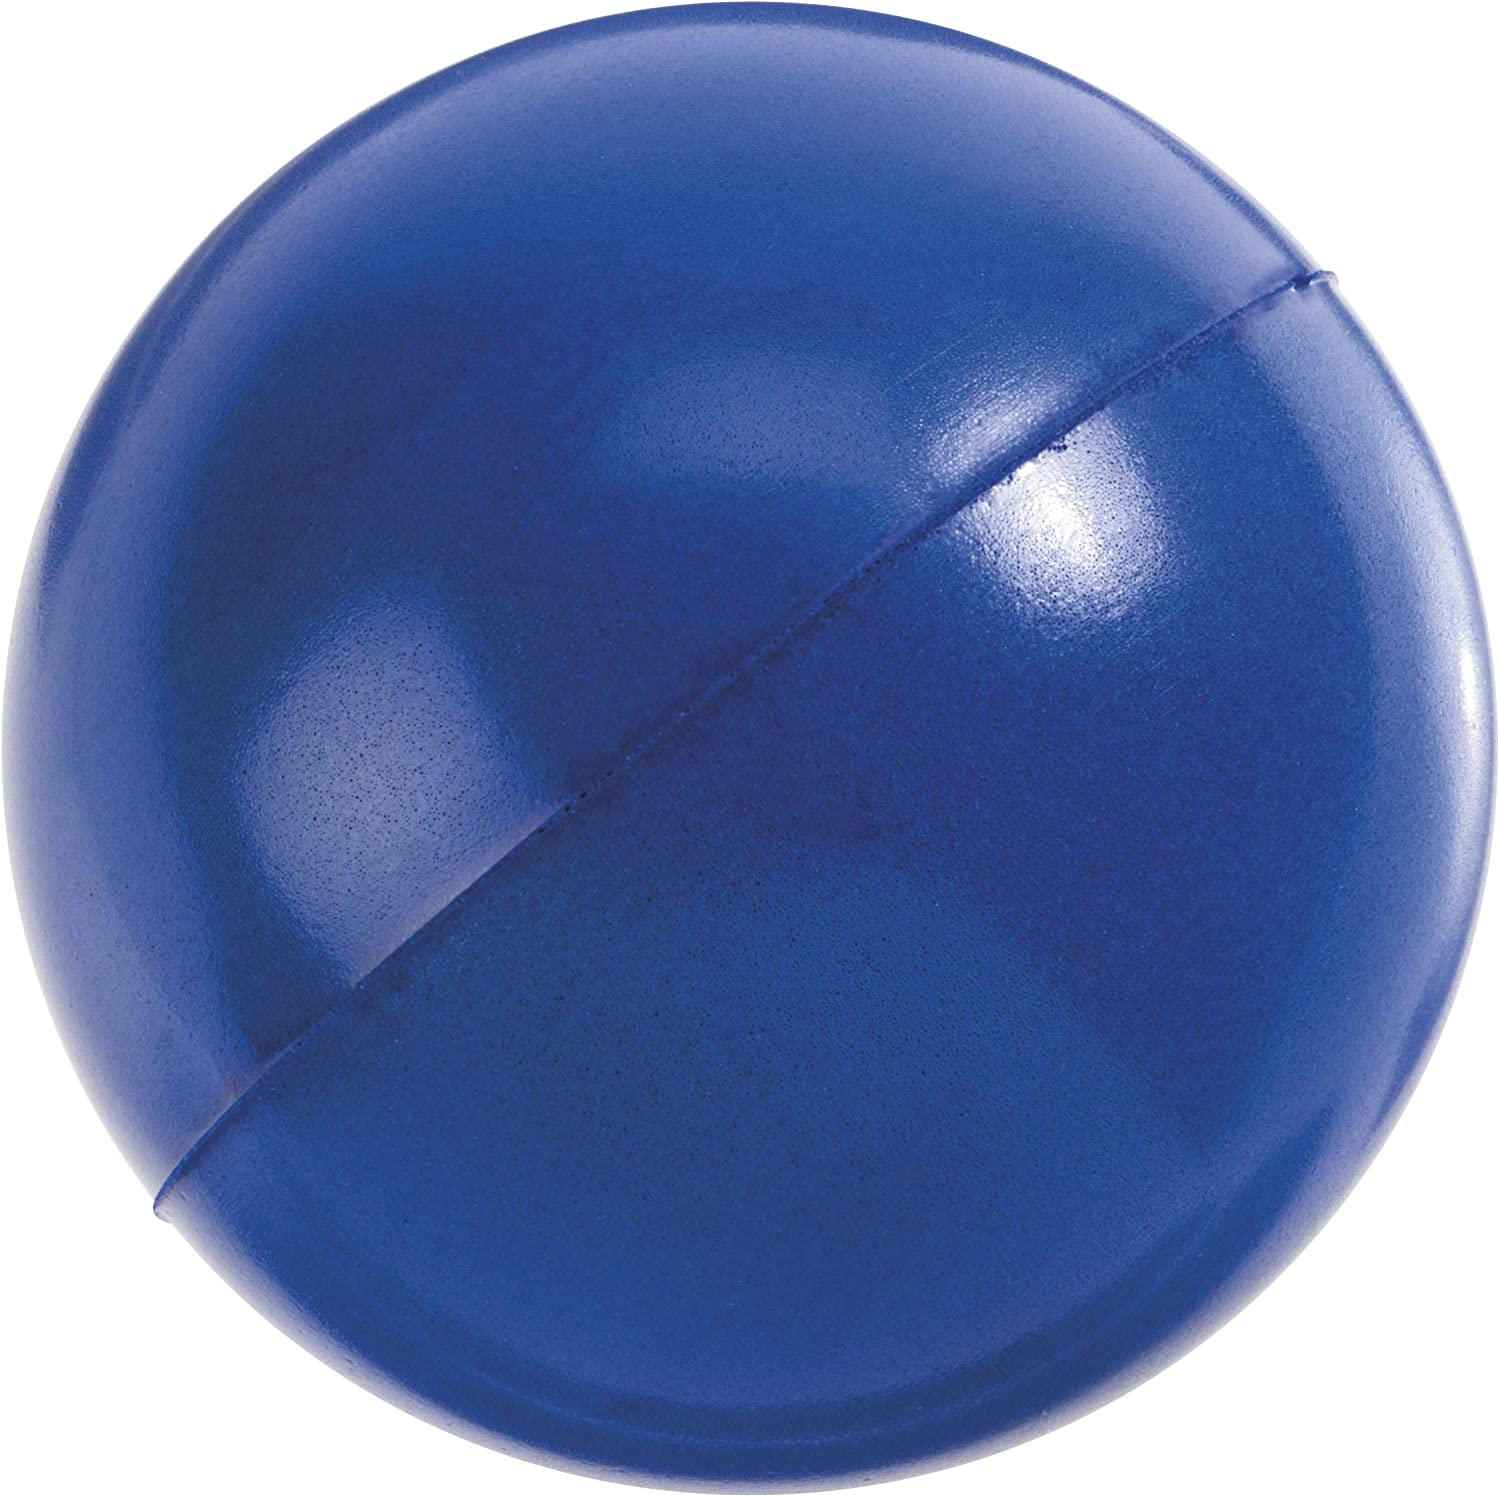 Toysmith Spring N Score Indoor// Outdoor Bounce Ball Game for Boys Girls Target Game